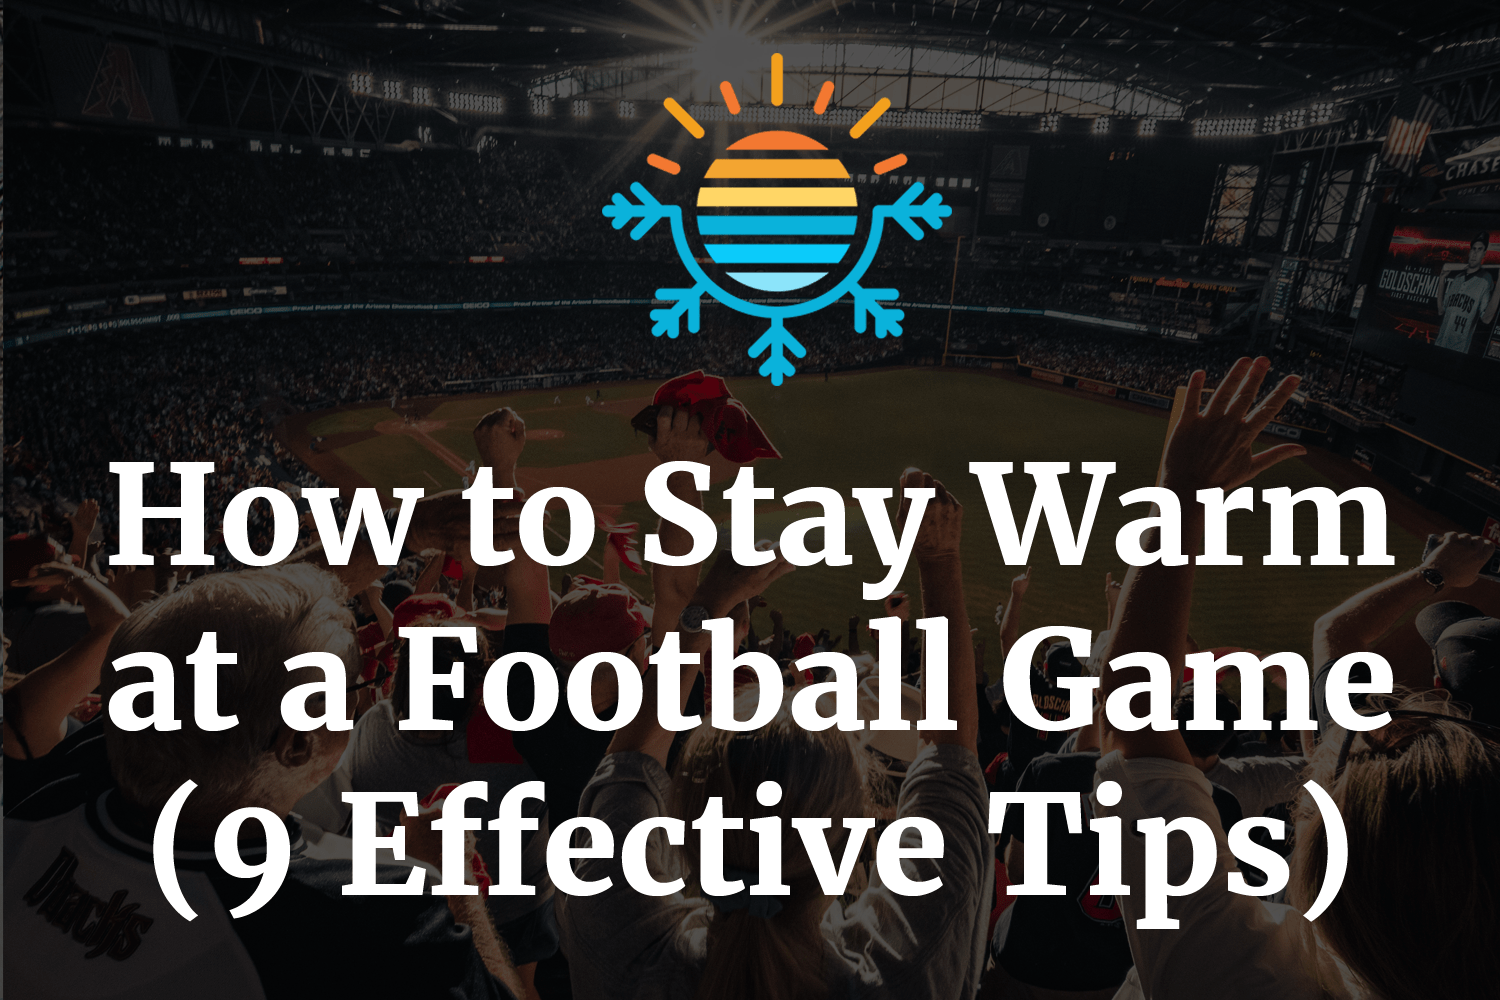 How to Stay Warm at a Football Game